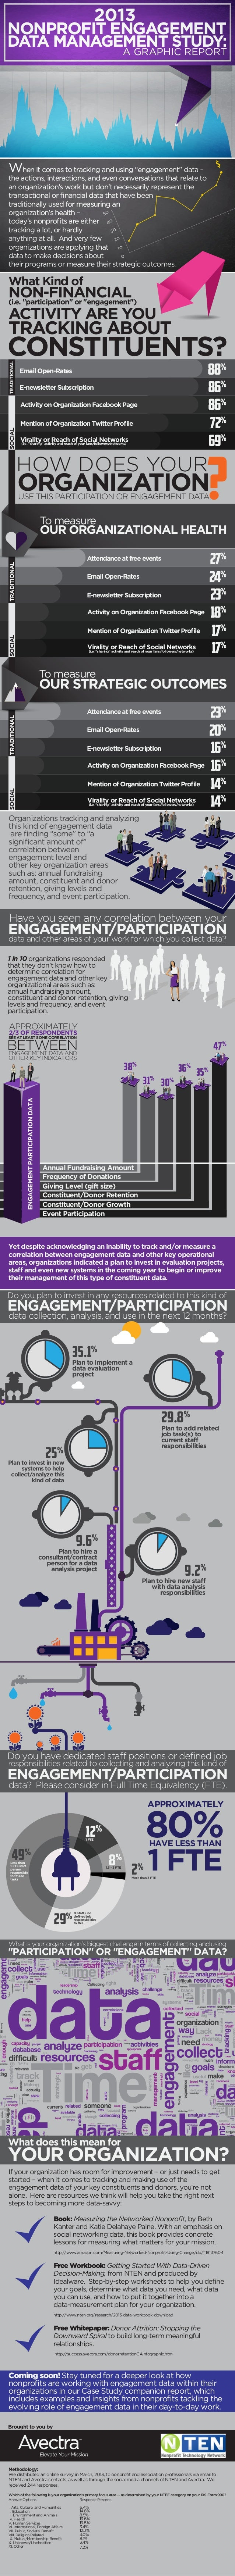 "1 FTENONPROFIT ENGAGEMENTDATA MANAGEMENT STUDY:2013A GRAPHIC REPORTWhen it comes to tracking and using ""engagement"" data –..."